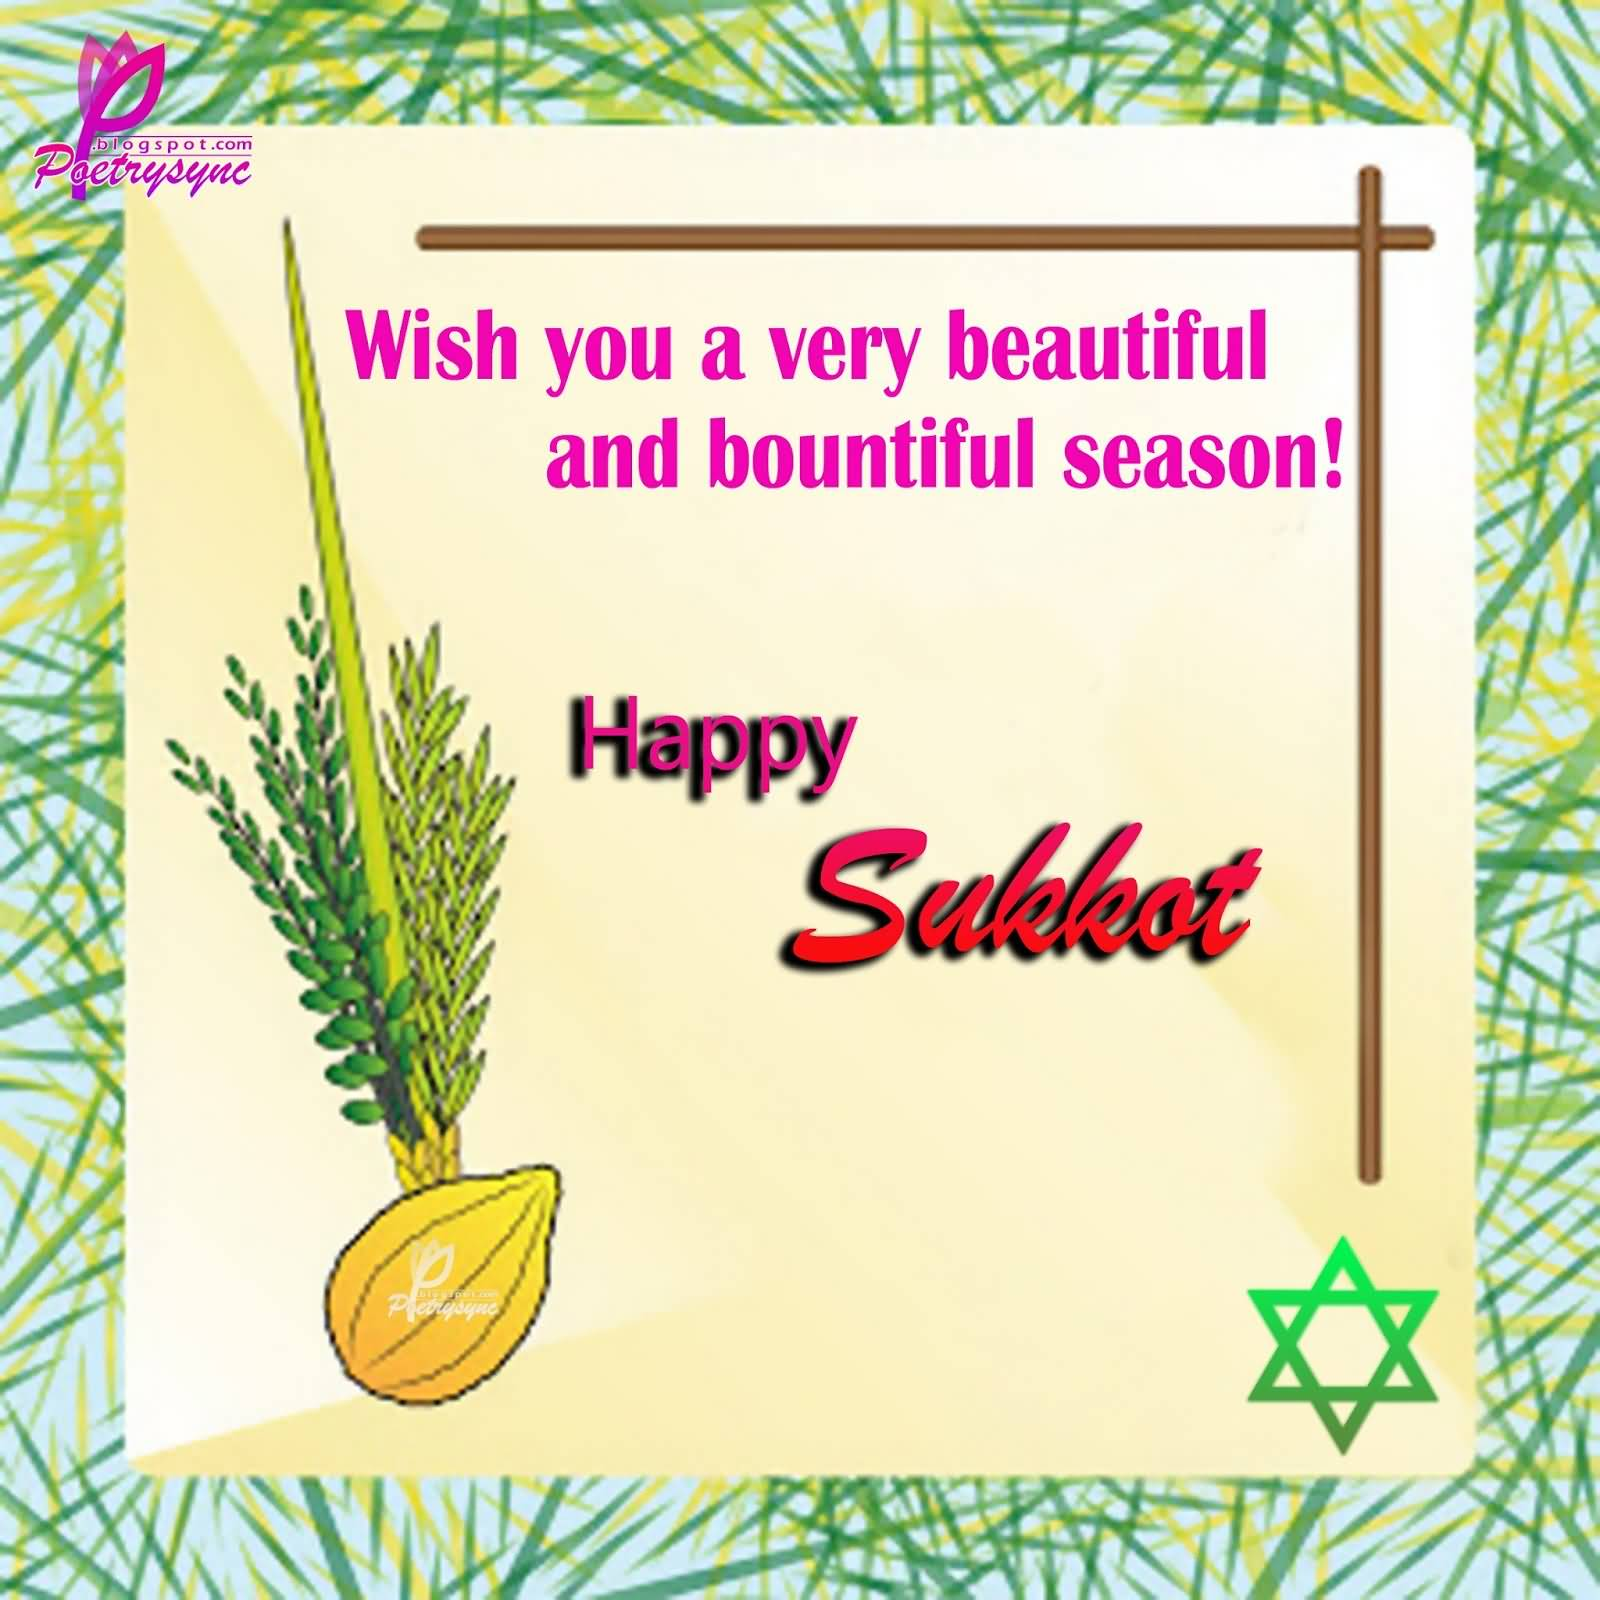 42 best pictures and images of happy sukkot 2016 greetings wish you a very beautiful and bountiful season happy sukkot greeting card kristyandbryce Choice Image